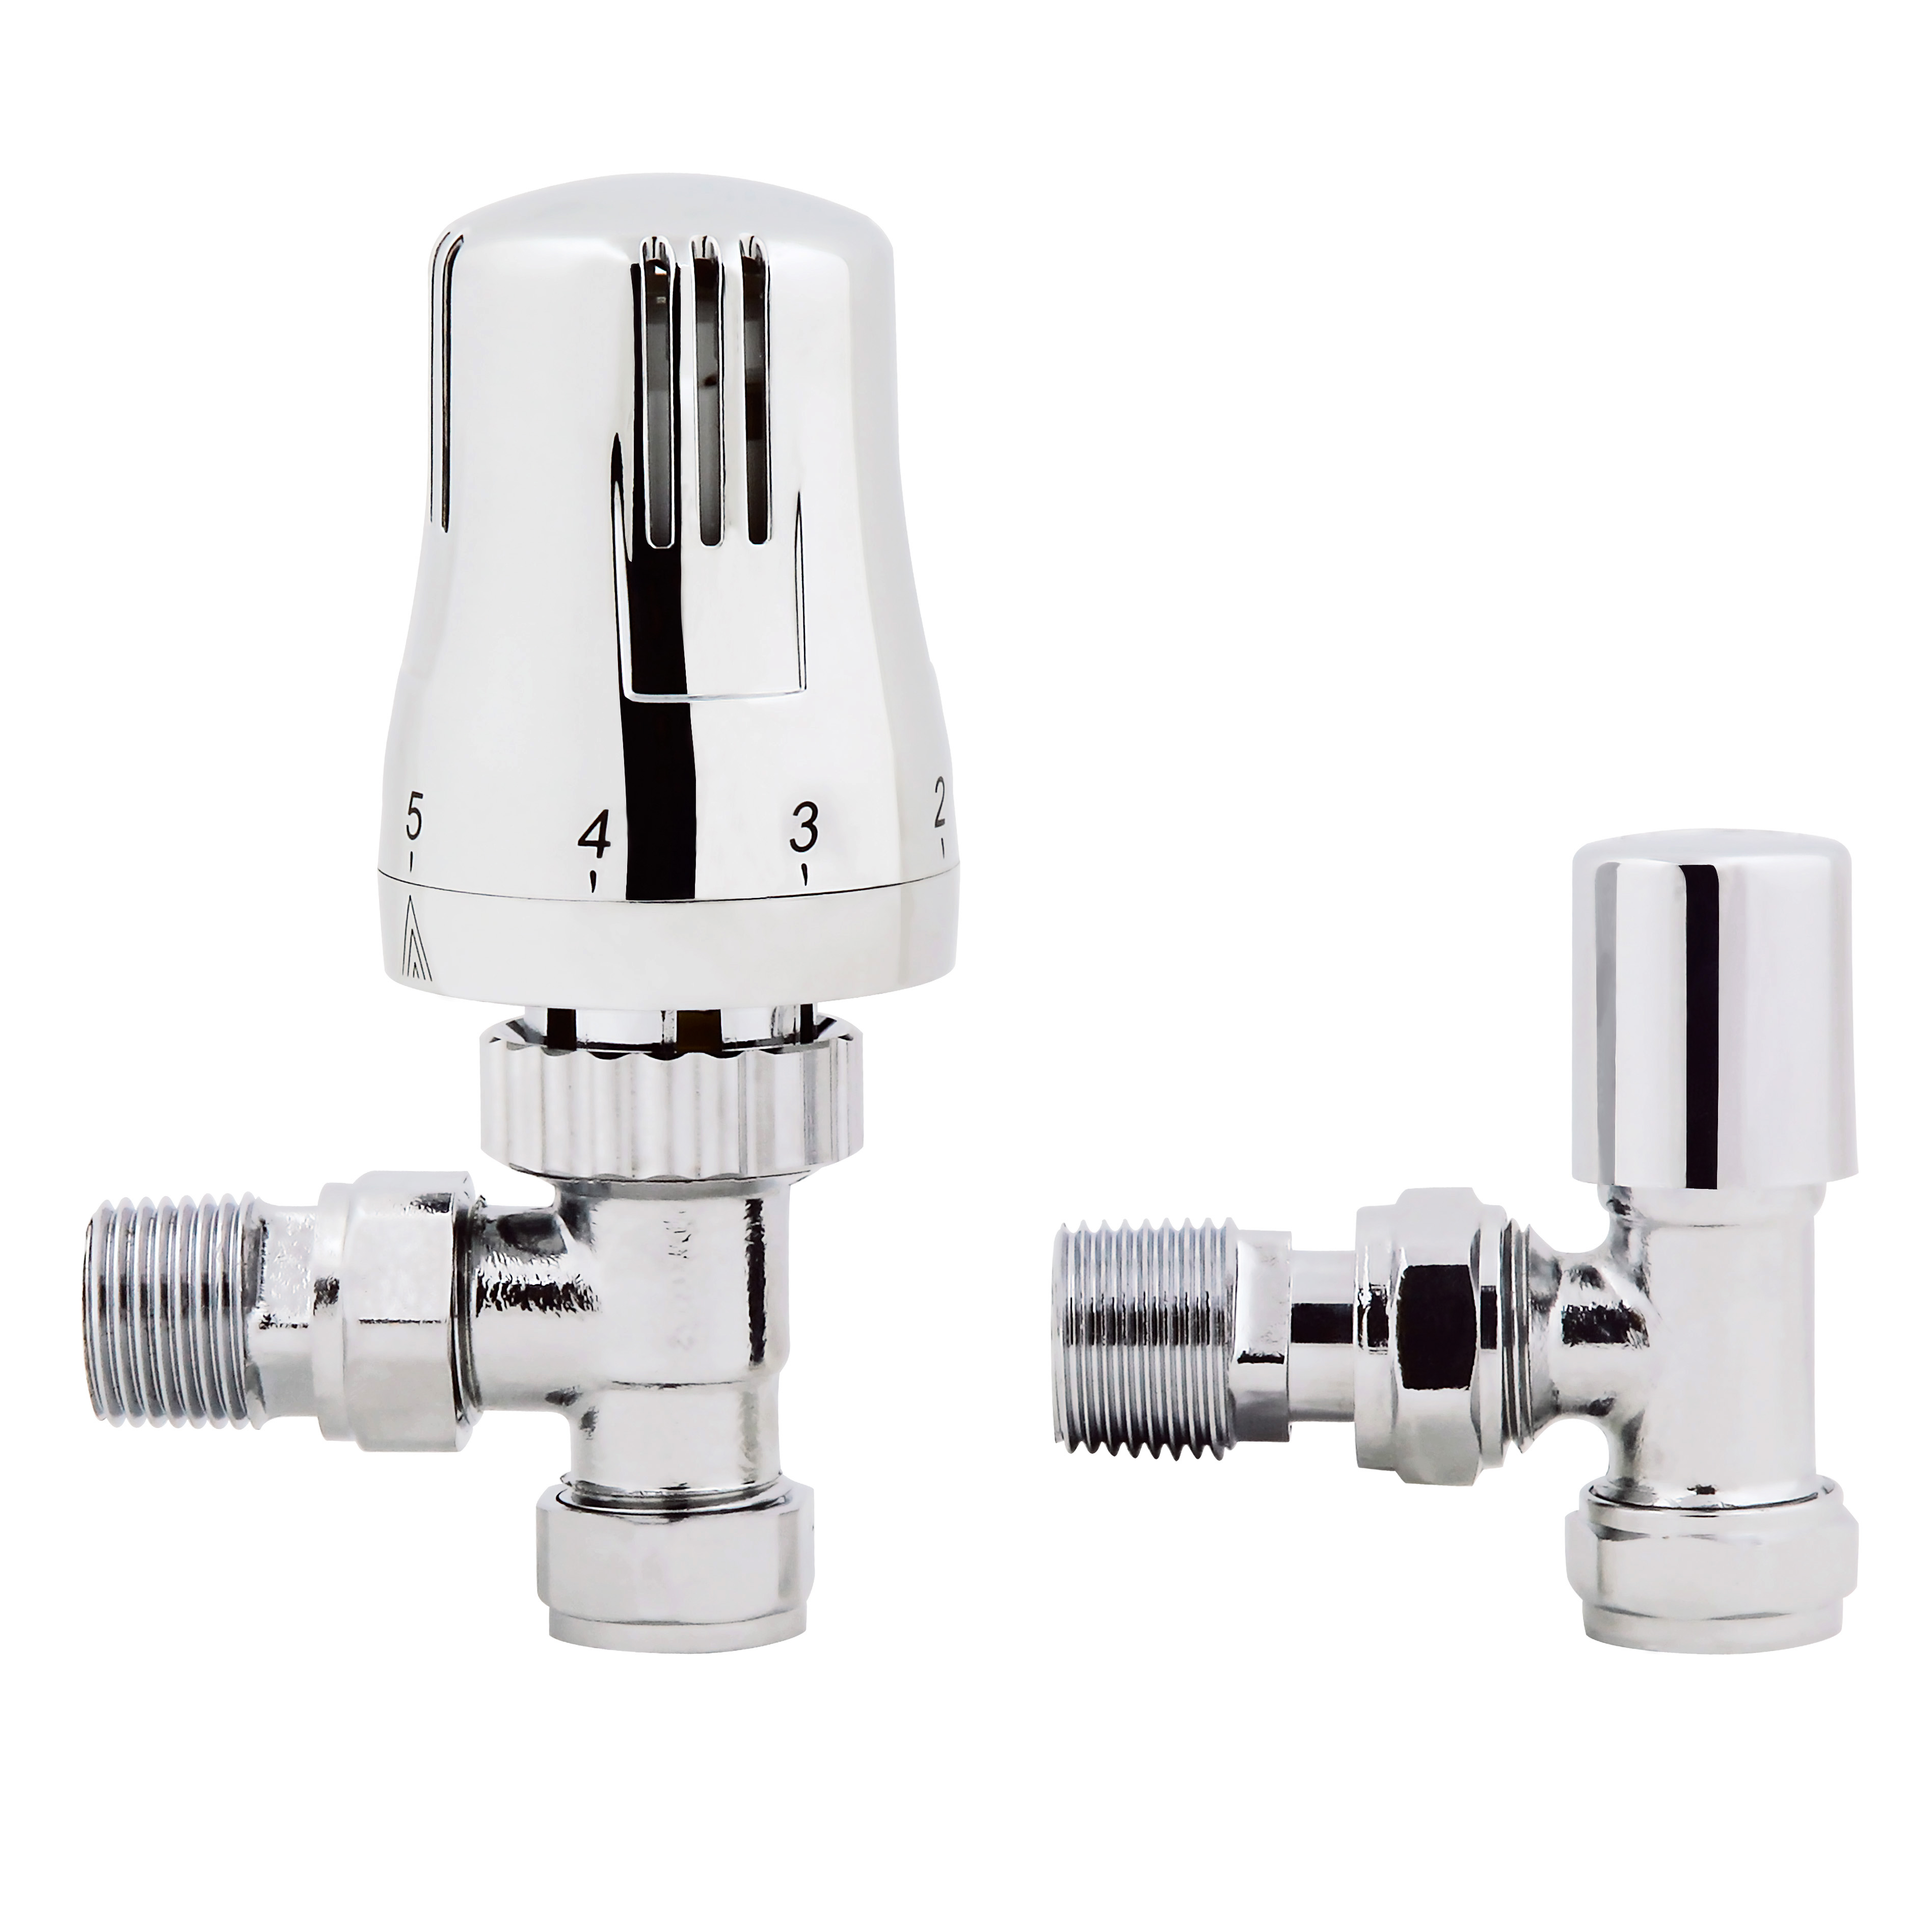 Thermostatic Angled Radiator Valves Modern Chrome Heated Towel Rail Ra07a Ebay